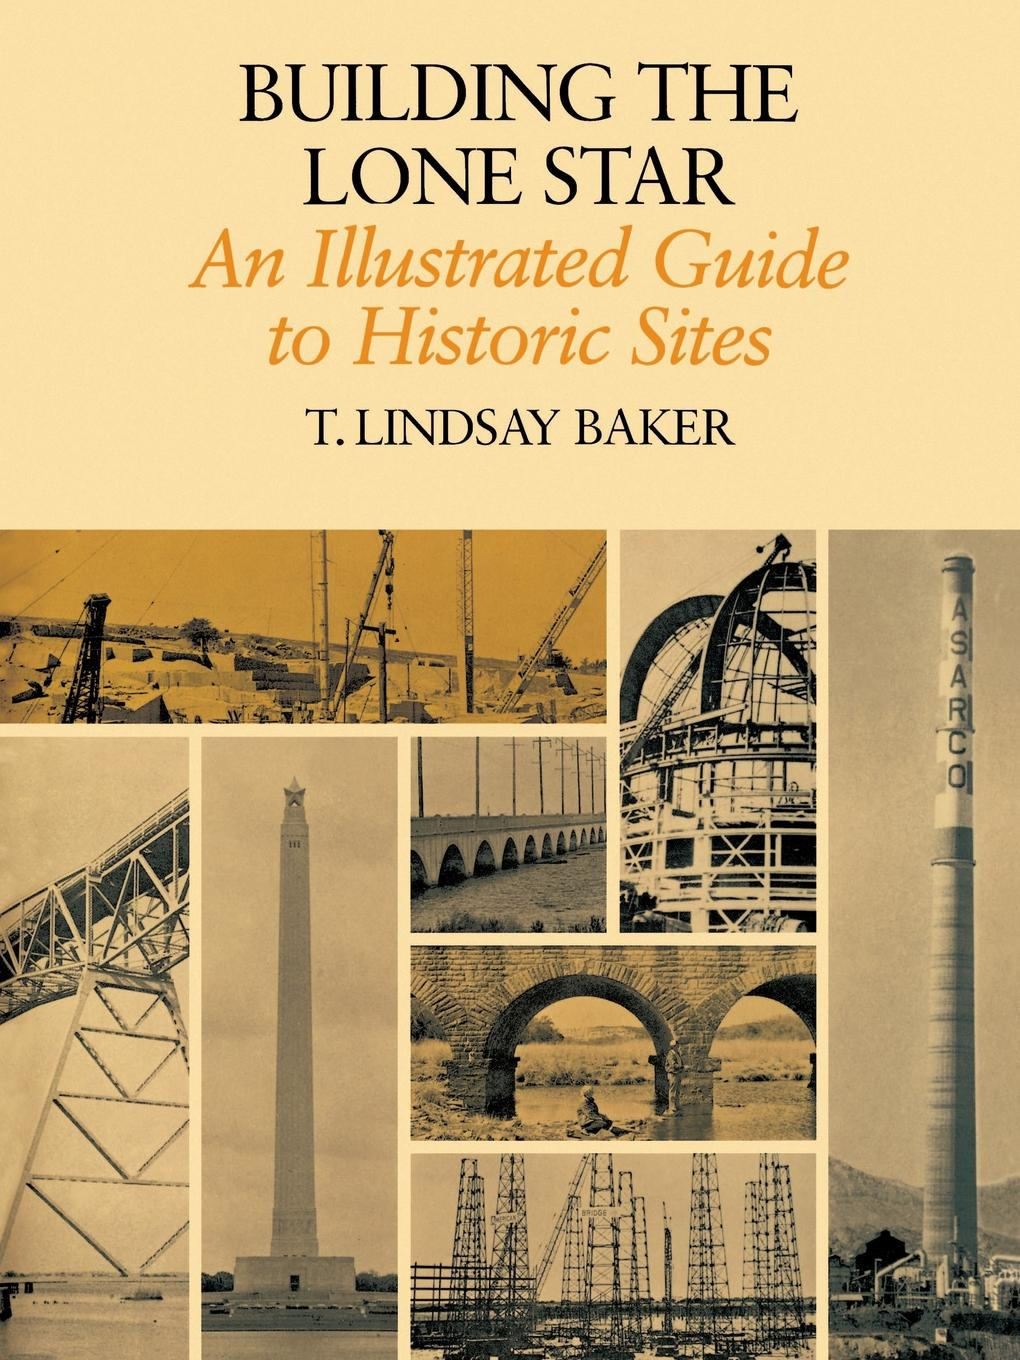 T. Lindsay Baker Building the Lone Star. An Illustrated Guide to Historic Sites francis ching d k building codes illustrated a guide to understanding the 2015 international building code